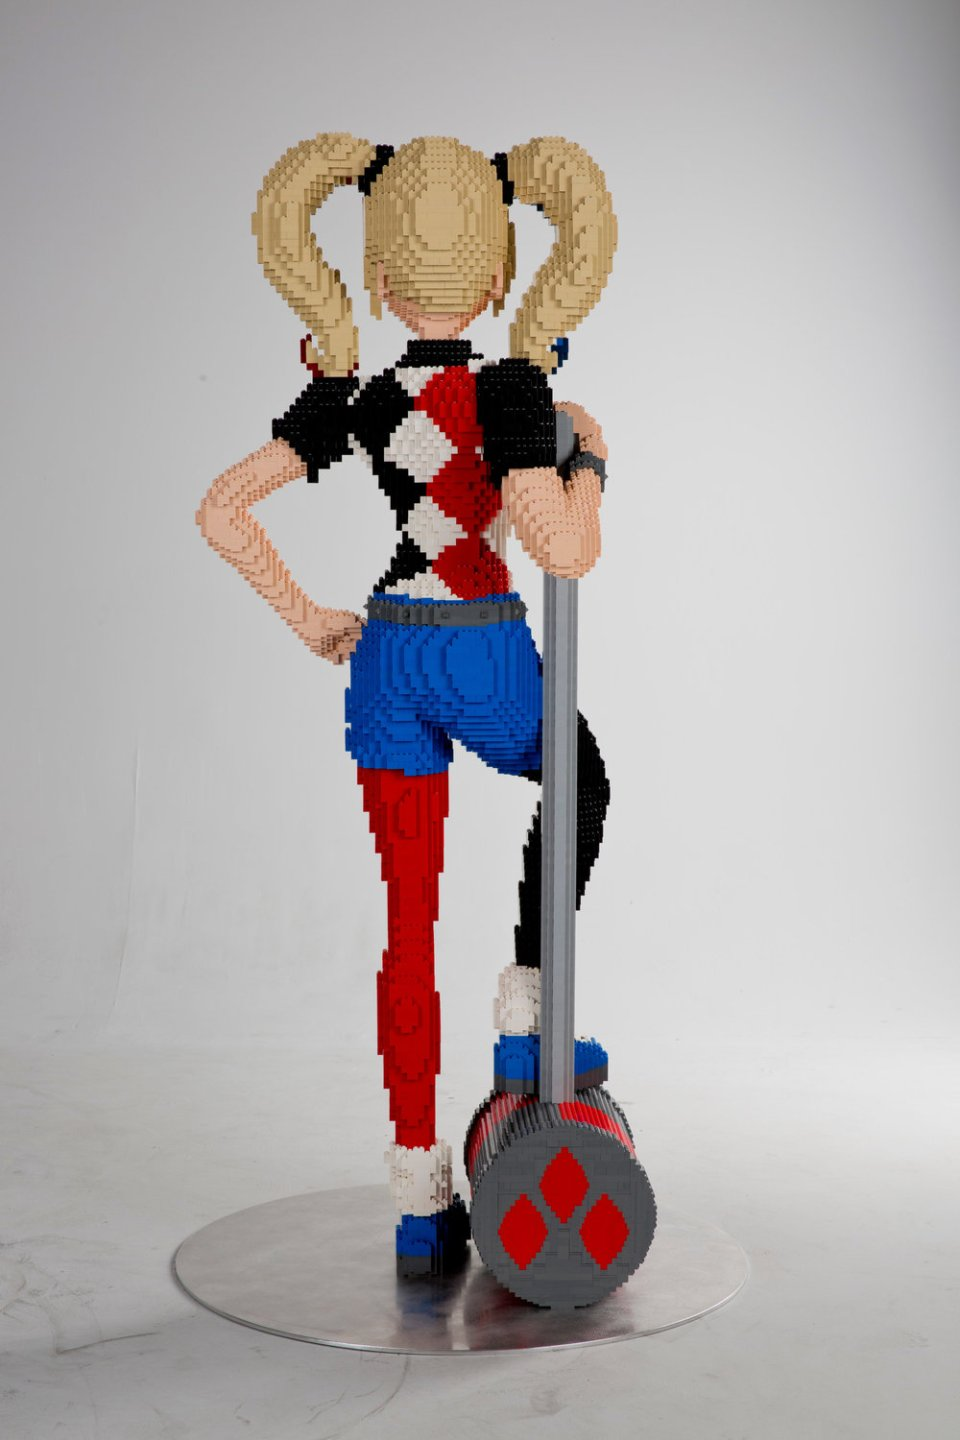 Life-Sized LEGO Version of Harley Quinn